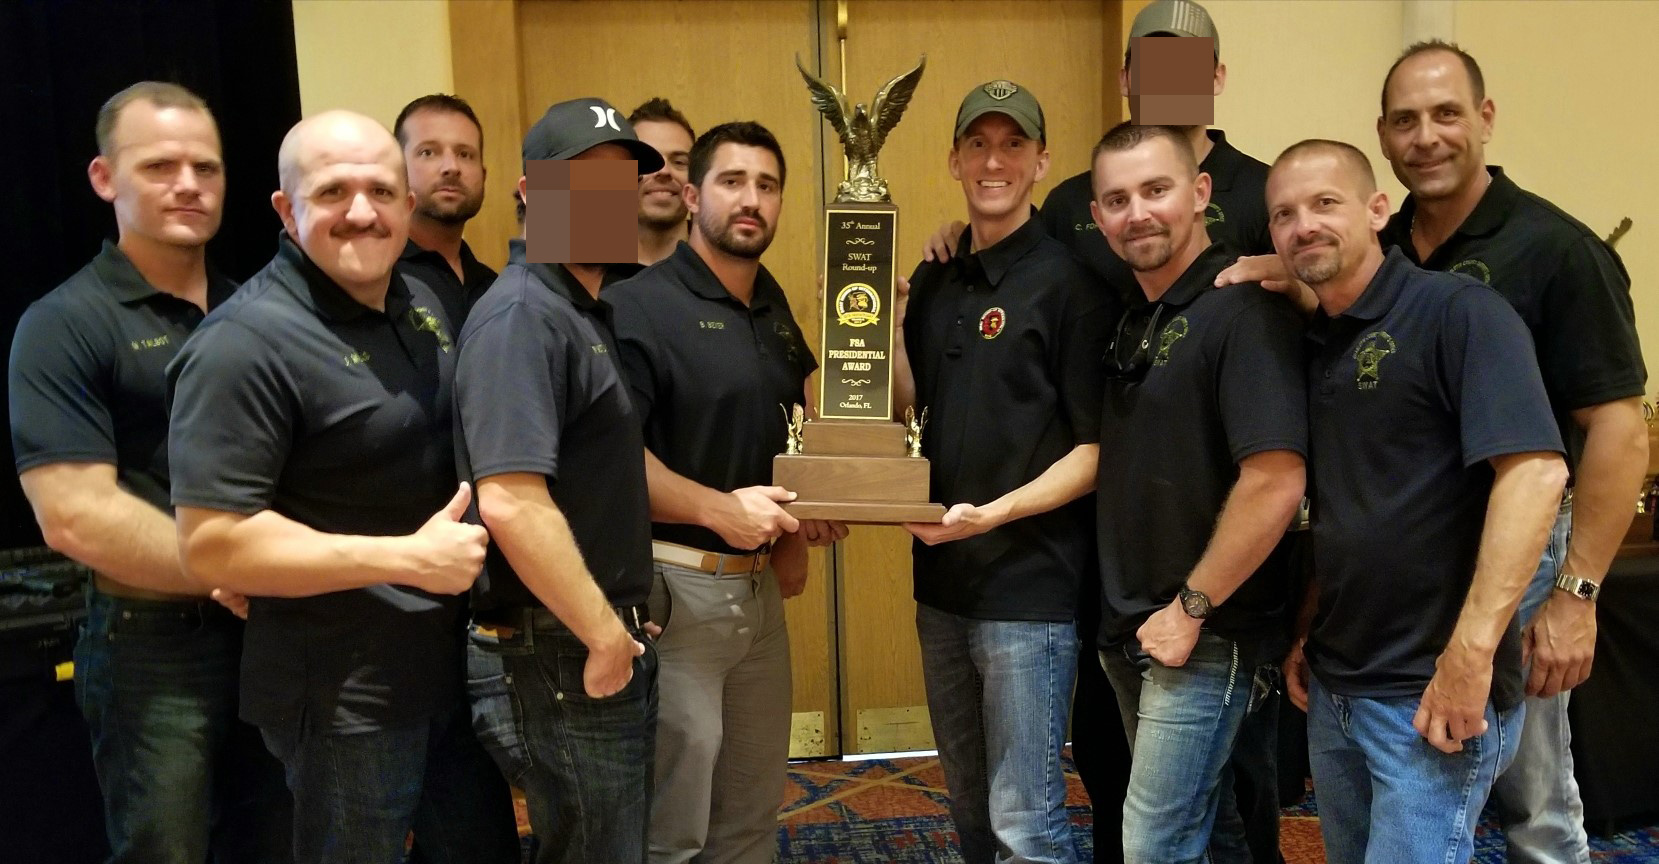 Charlotte County Sheriff's Office SWAT Team Recognized by Florida SWAT Association